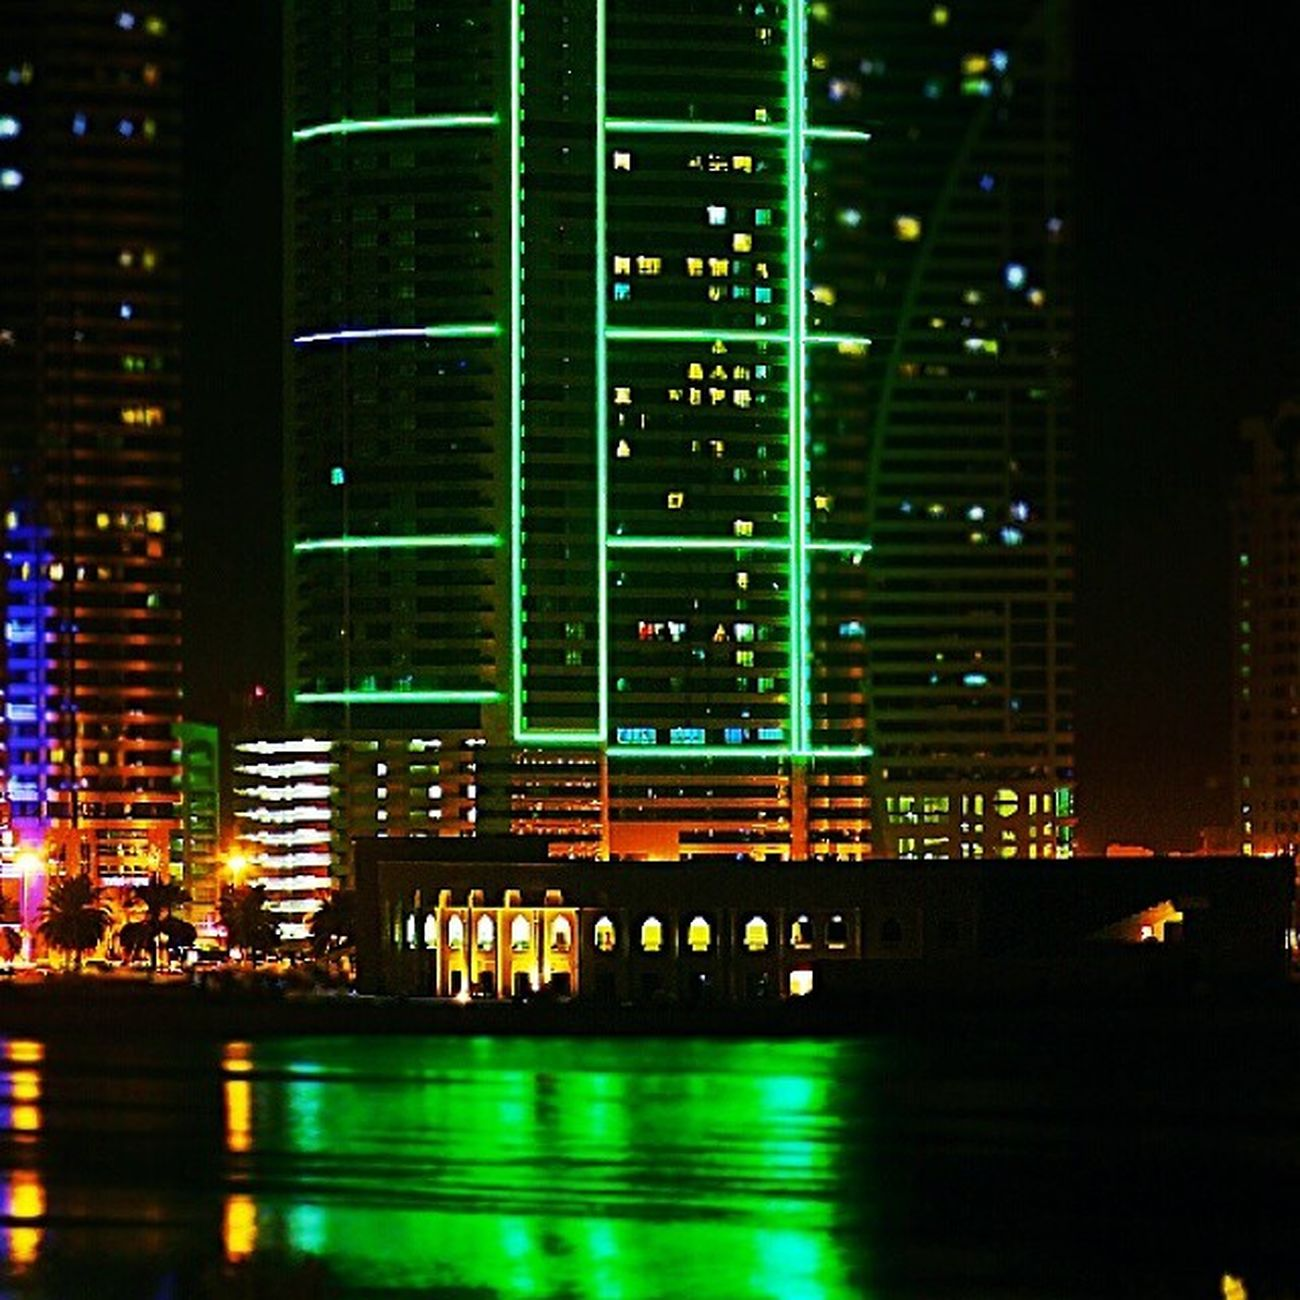 Nightvibes Lights Shadow Emerald 30x building neon Corniche almajaz buhairah From my window part 1:D